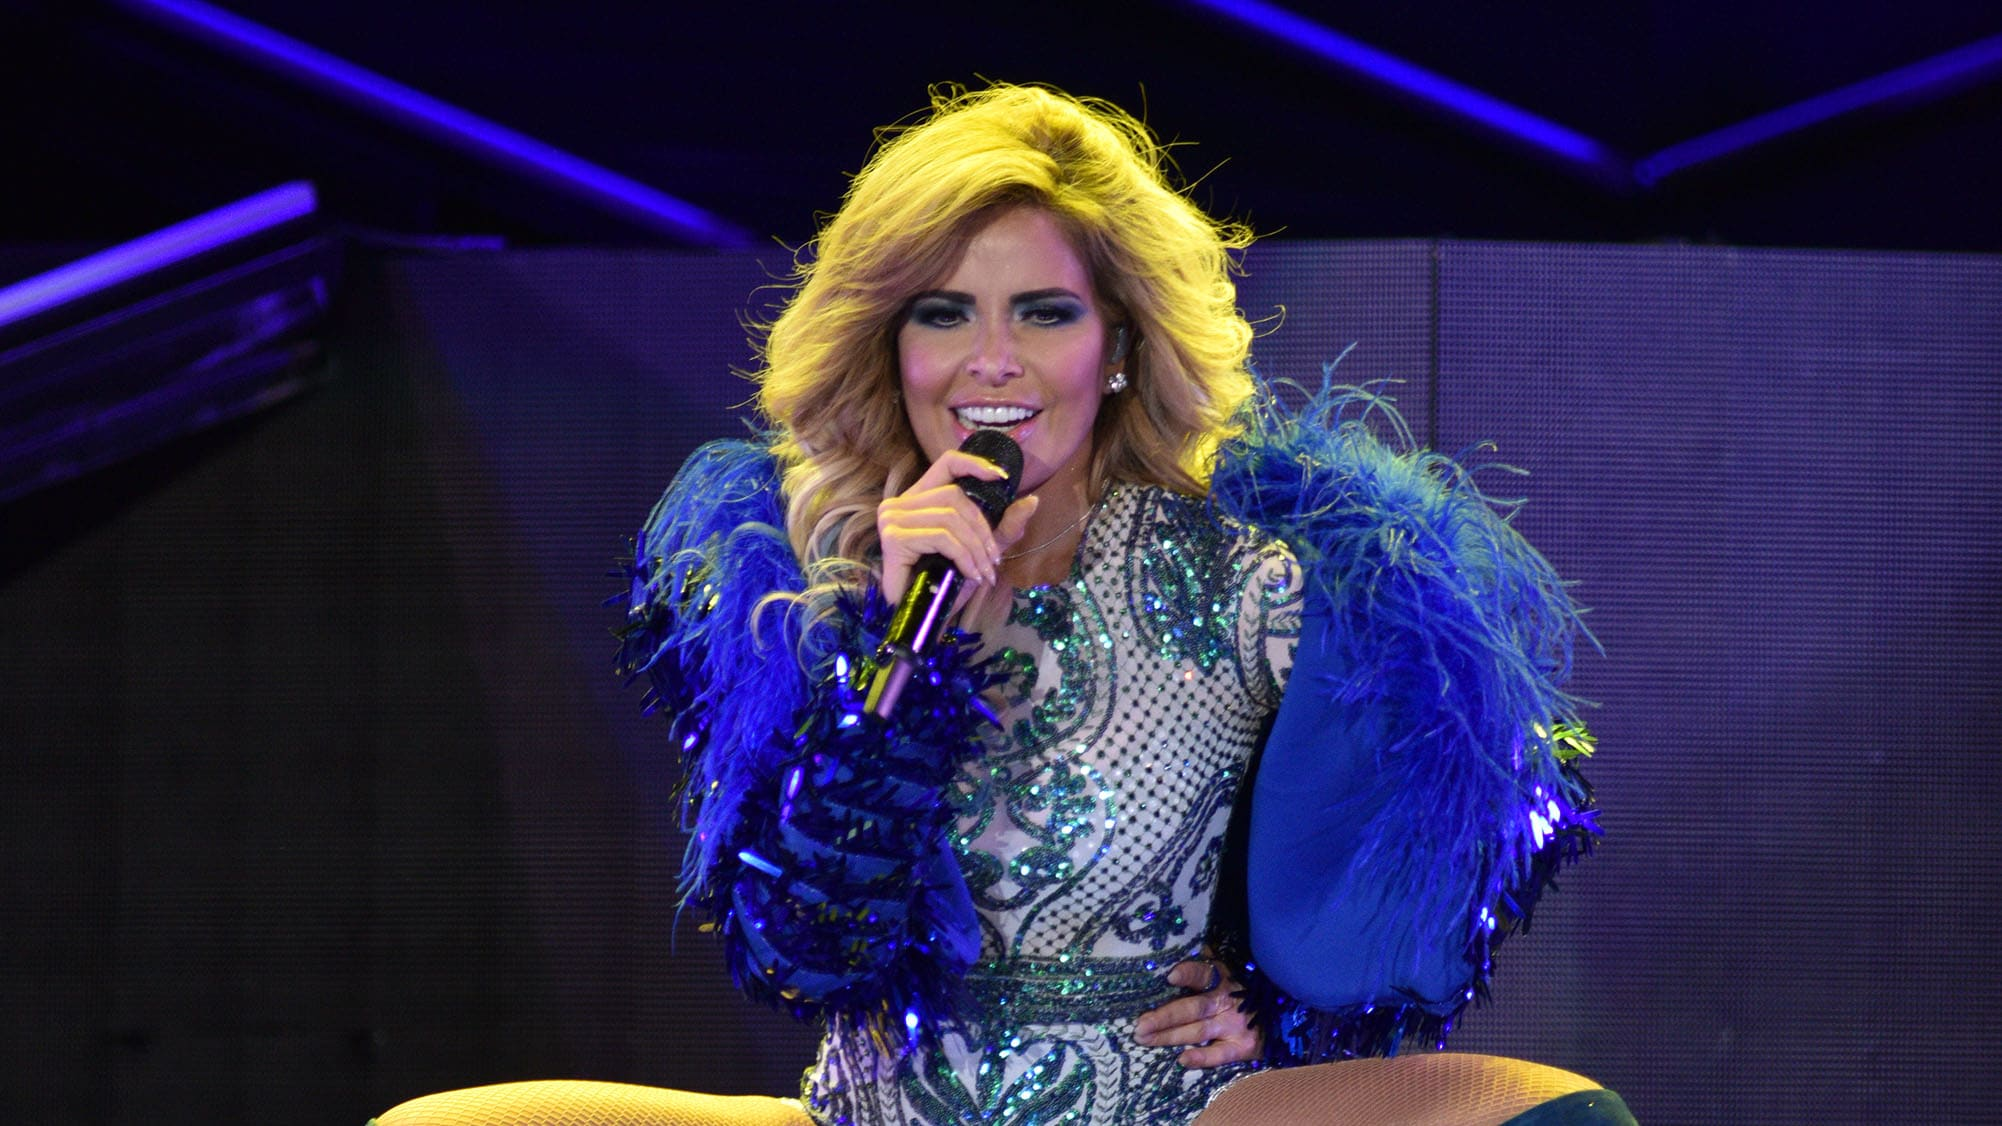 """DENVER, CO - MARCH 23:  Mexican singer Gloria Trevi performs during the """"VERSUS World Tour"""" at the Pepsi Center on March 23, 2018 in Denver, Colorado.  (Photo by Tom Cooper/Getty Images)"""